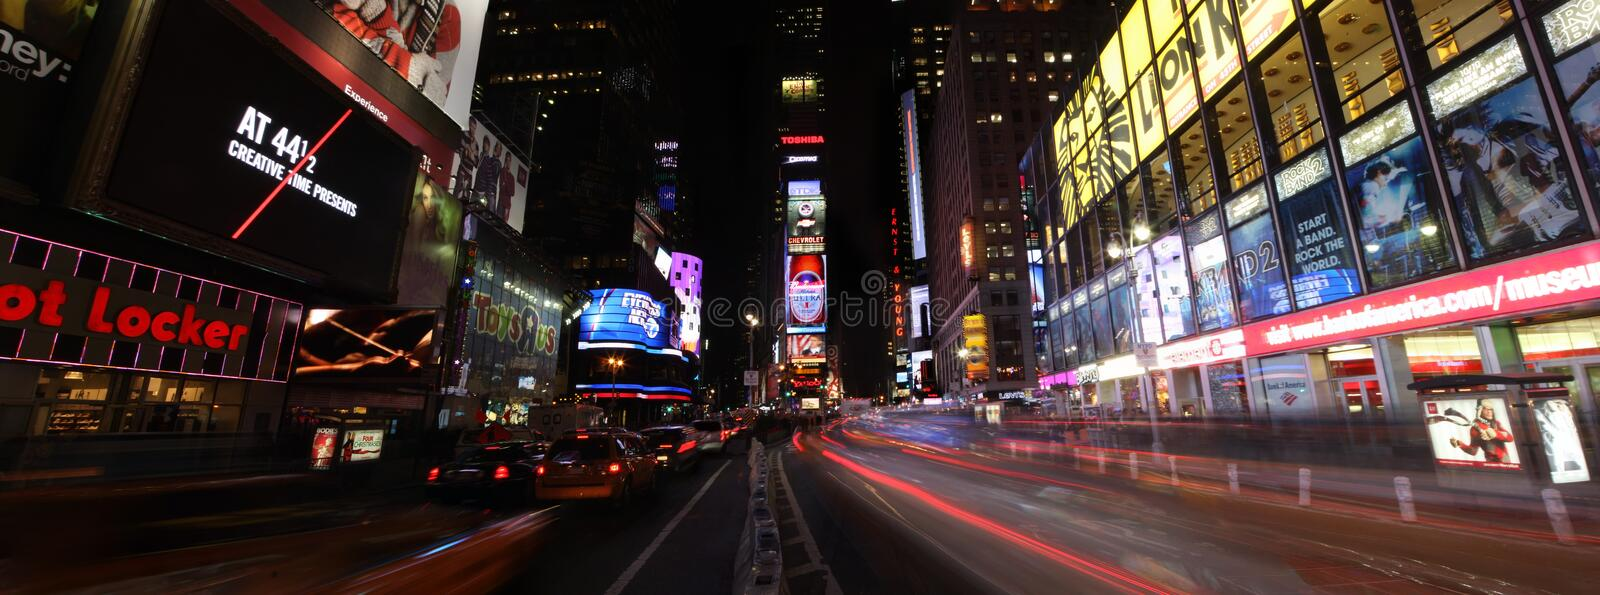 Times Square by Night royalty free stock photos